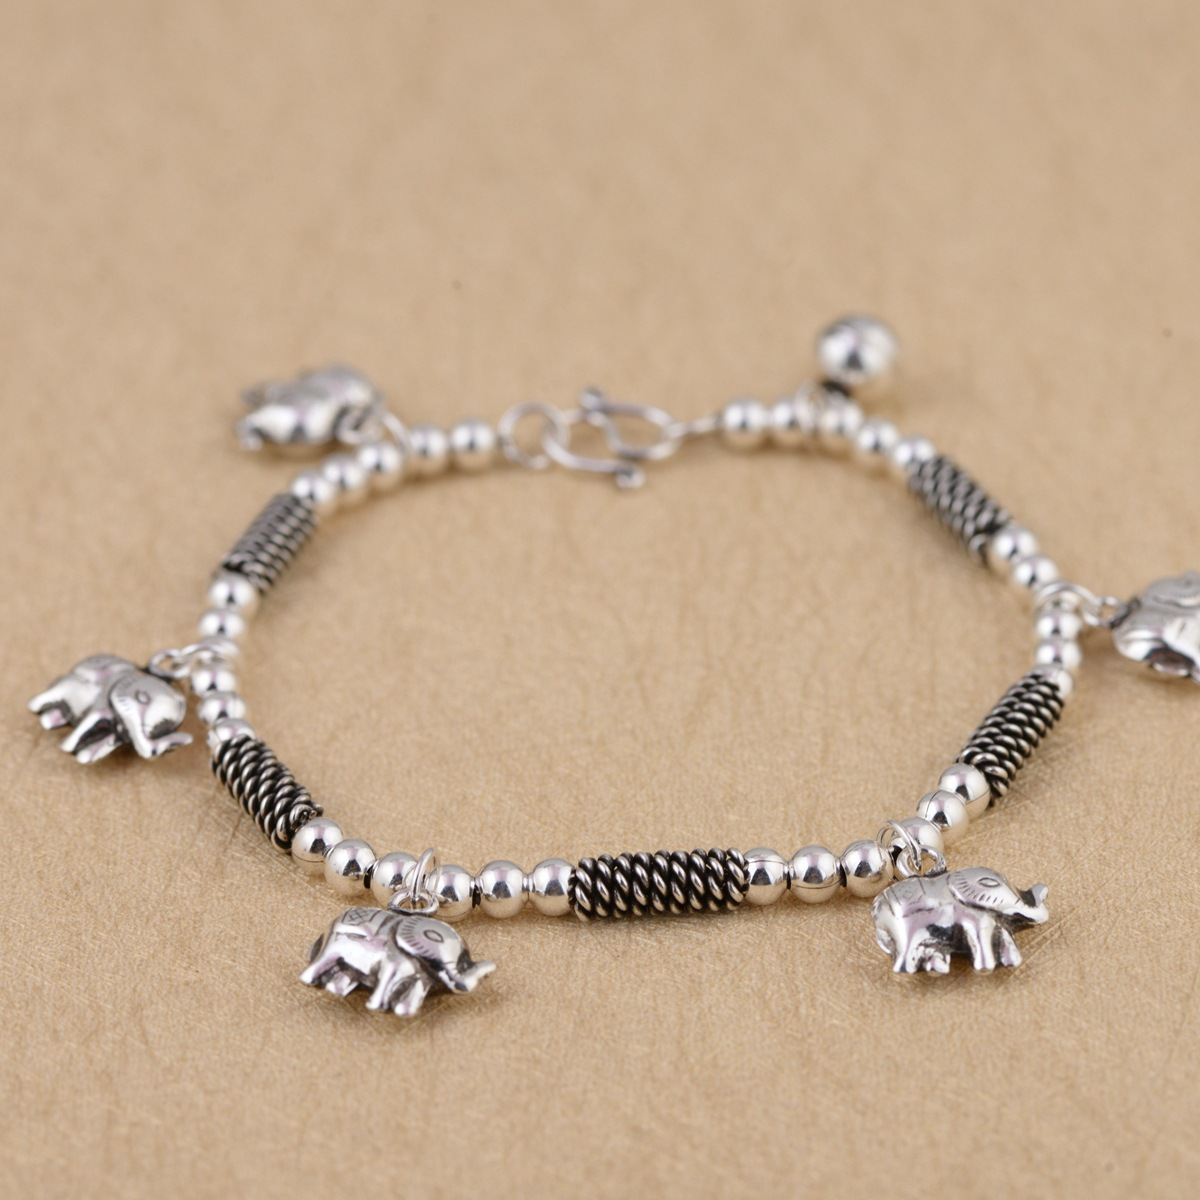 2018 Sale Kehribar Armbanden Voor Vrouwen Thai Wholesale S925 Pure Bracelet Personality Exquisite Small Beads Like Female Model small like a1163 2015